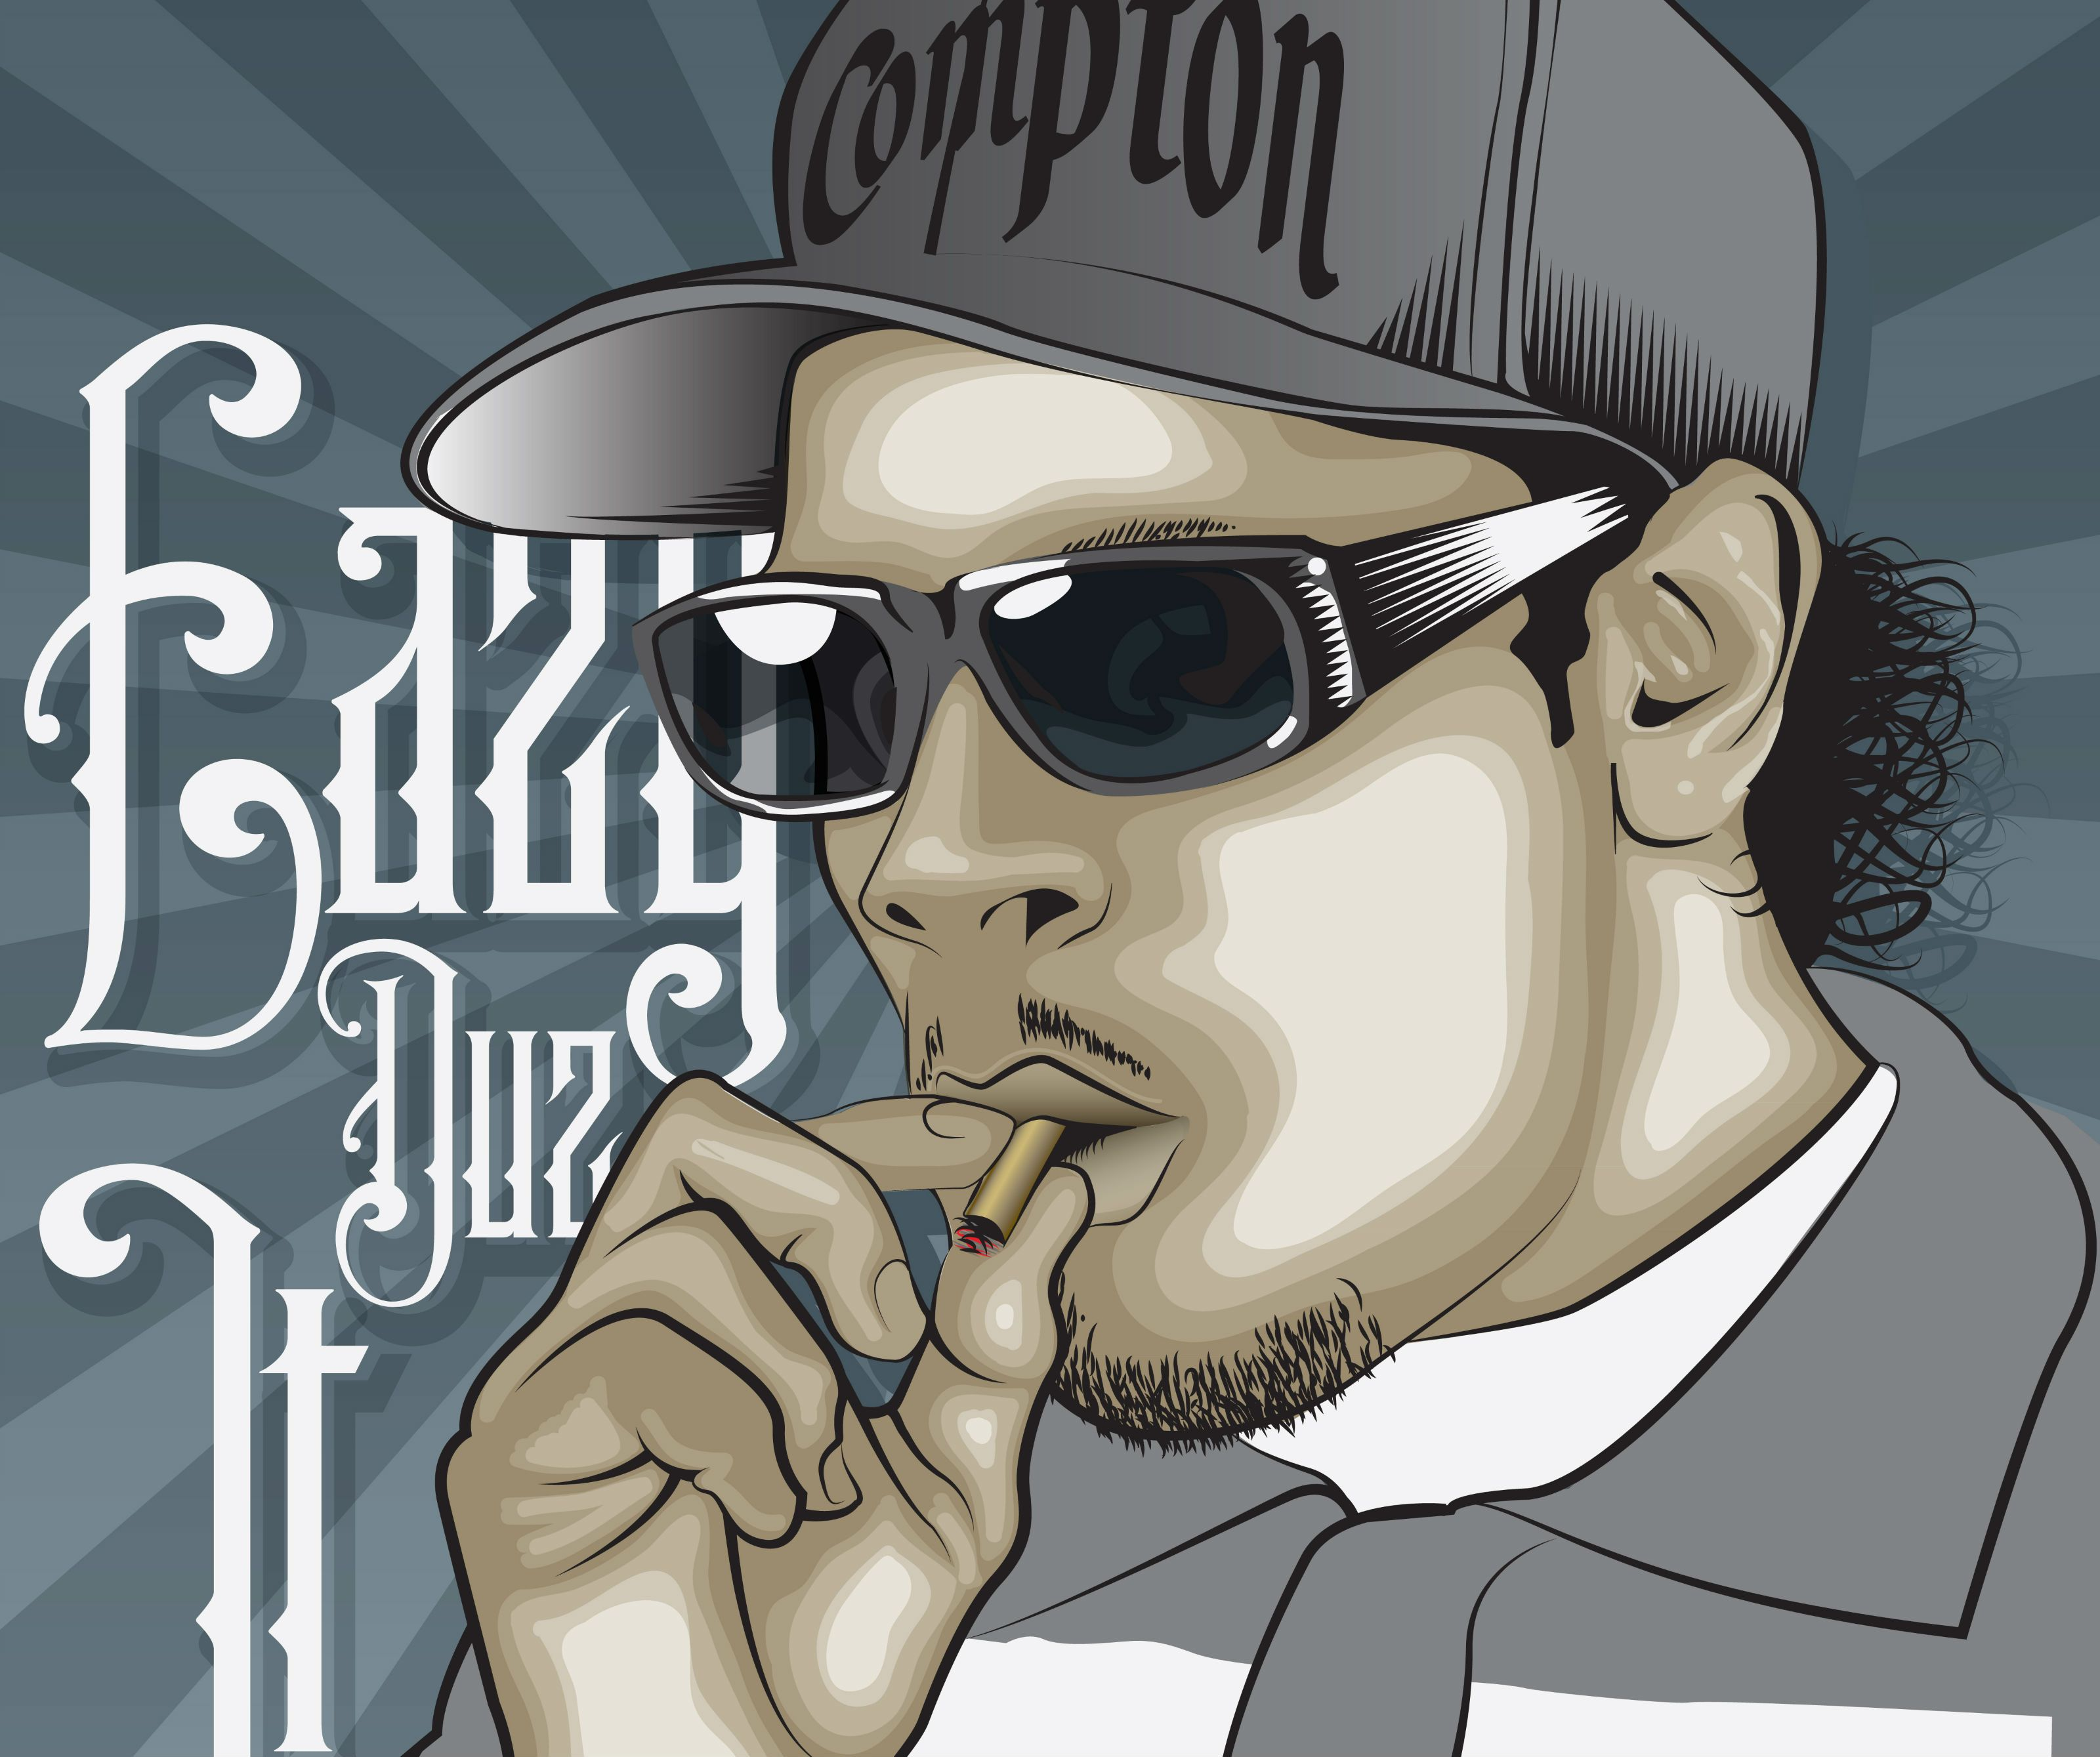 Eazy E HD Wallpapers Of In High Resolution And Quality As Well An Additional Full Which Ideally Suit For Desktop